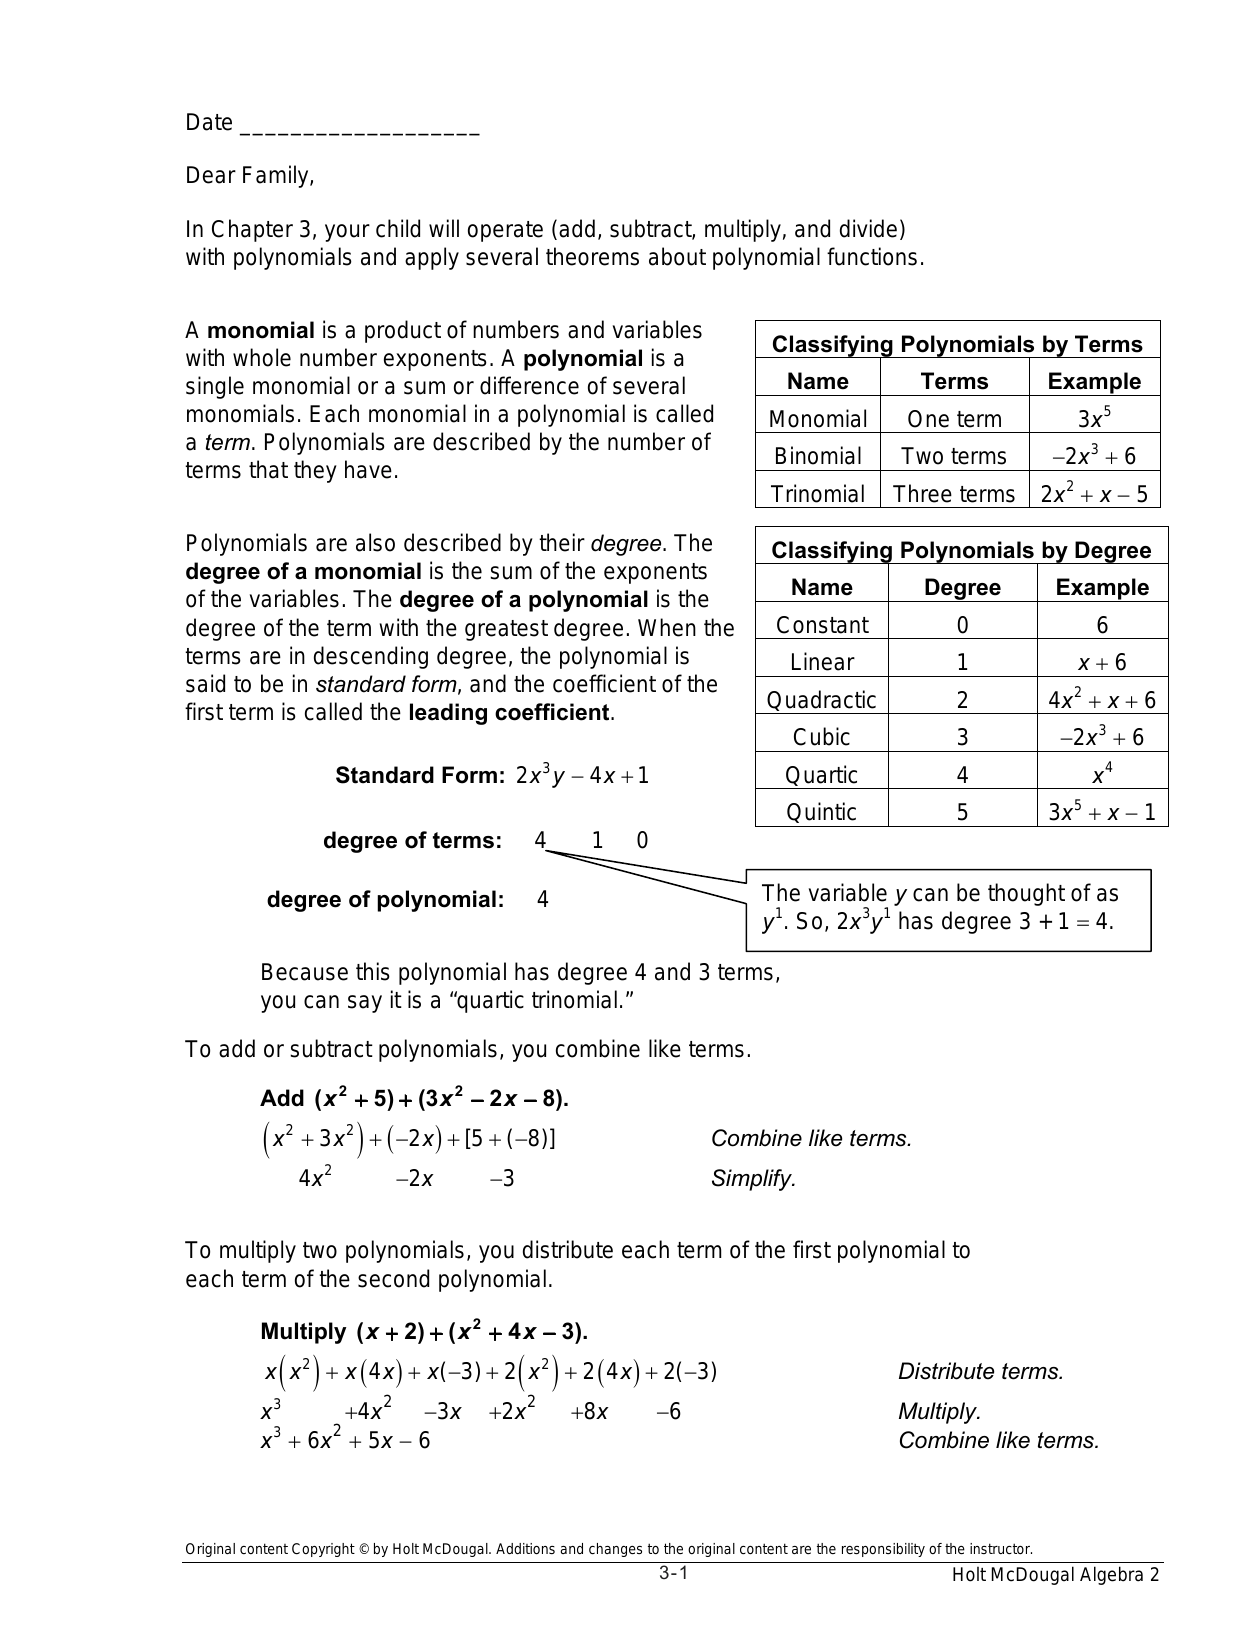 Howto How To Factor A Quartic Trinomial